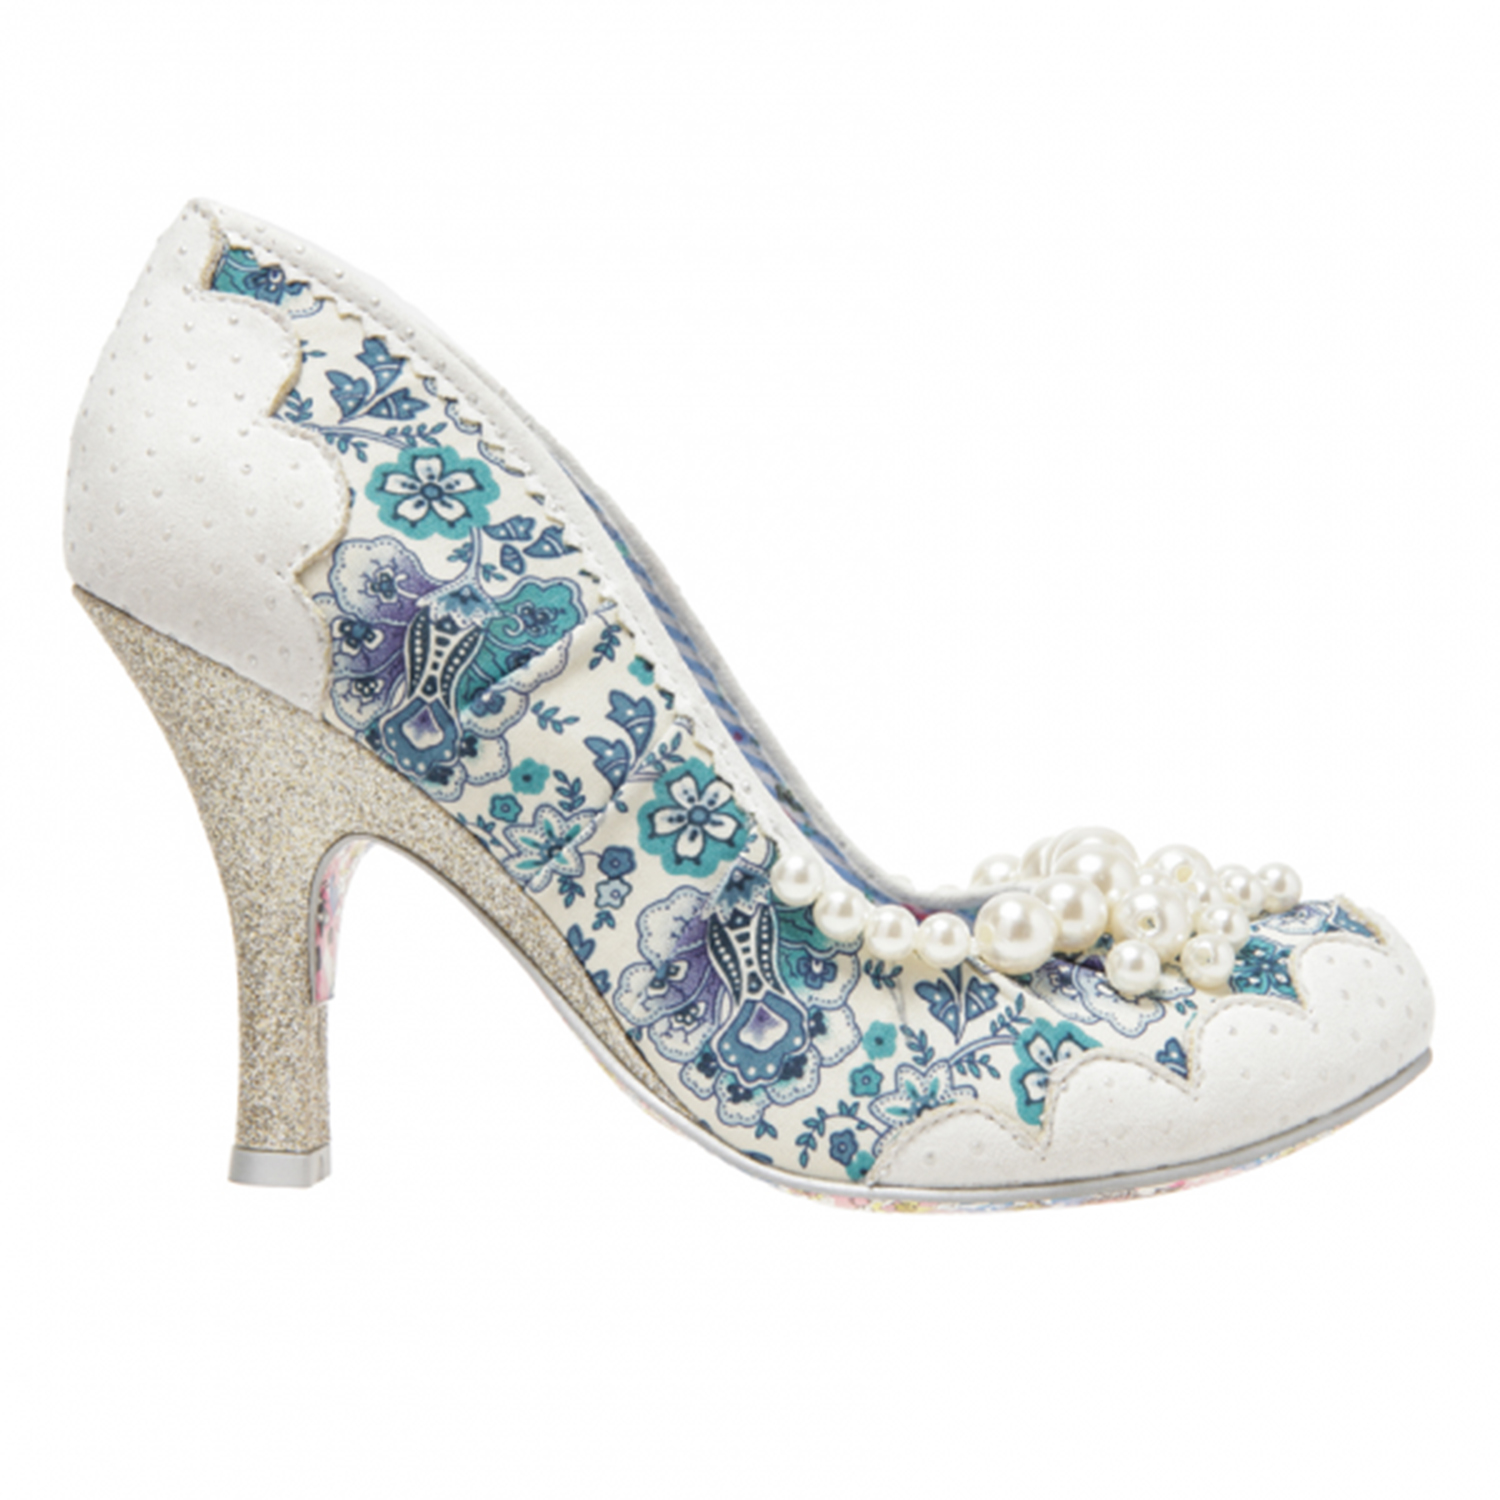 Irregular Choice Pearly Girly Shoes 1950s Shoes